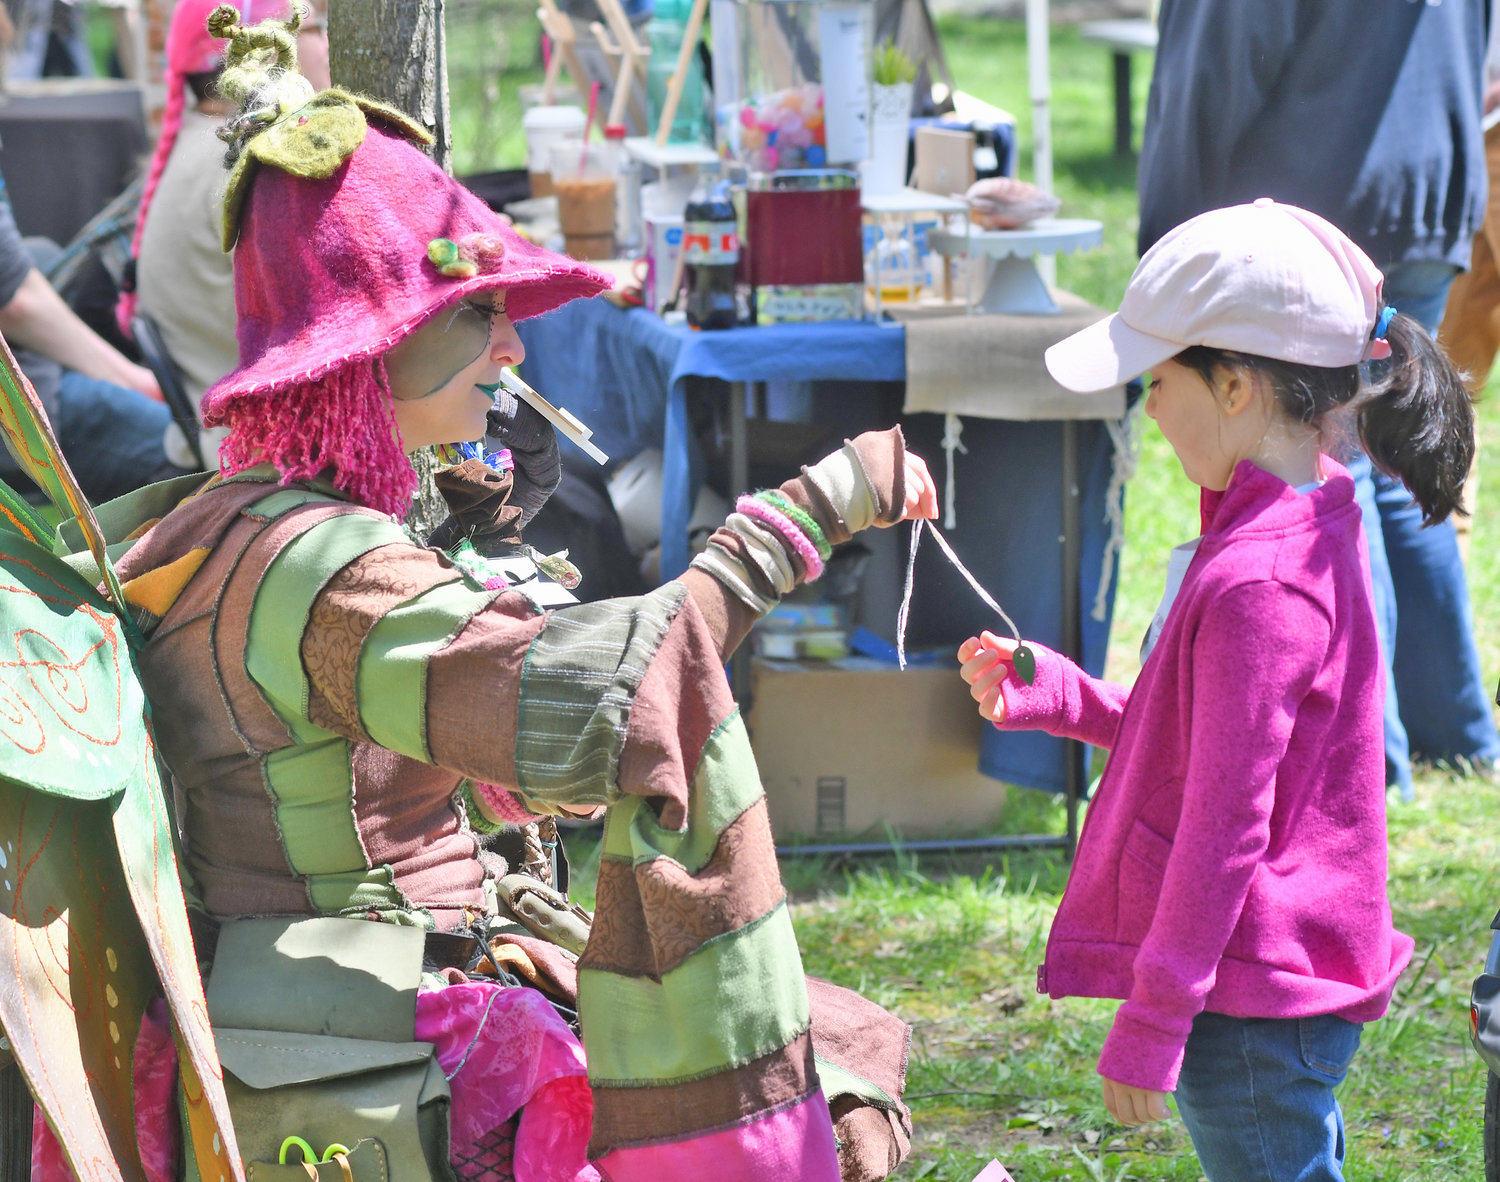 WINNINGS — After playing a game, Thimbleberry the Woodsprite gives a prize to Alana Pratt, 6, daughter of Jeff Sullivan and Shamariah Pratt-Sullivan of New Hartford at the Mayfaire on the Green in Holland Patent on Saturday.